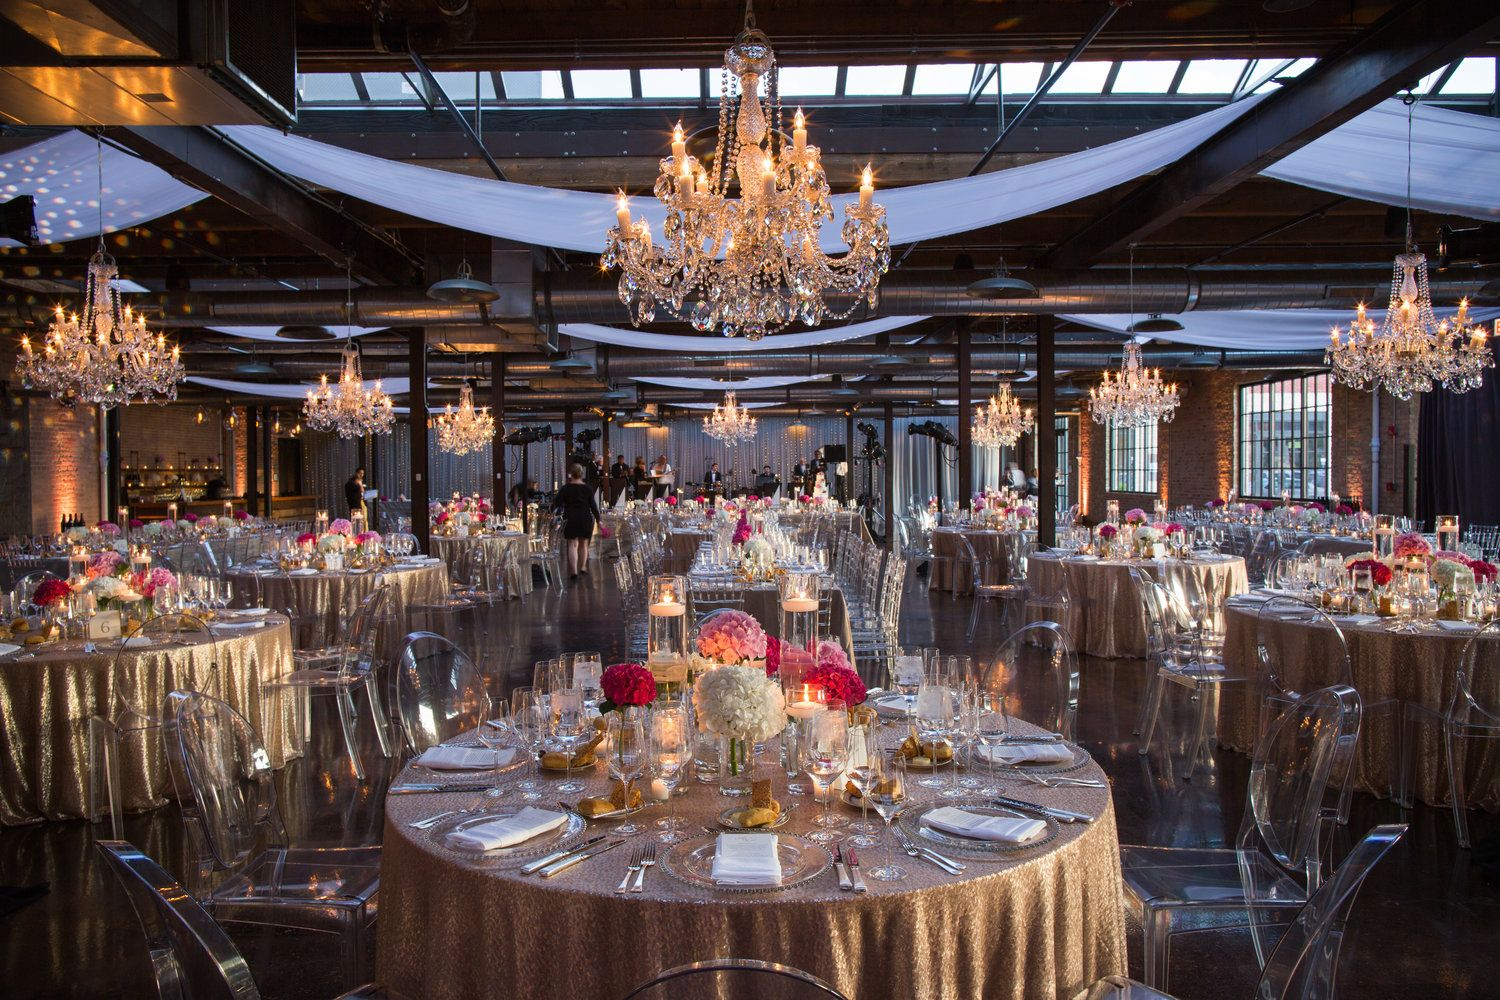 Wedding hall decoration images  chicago wedding venues We have so many favorite wedding venues in